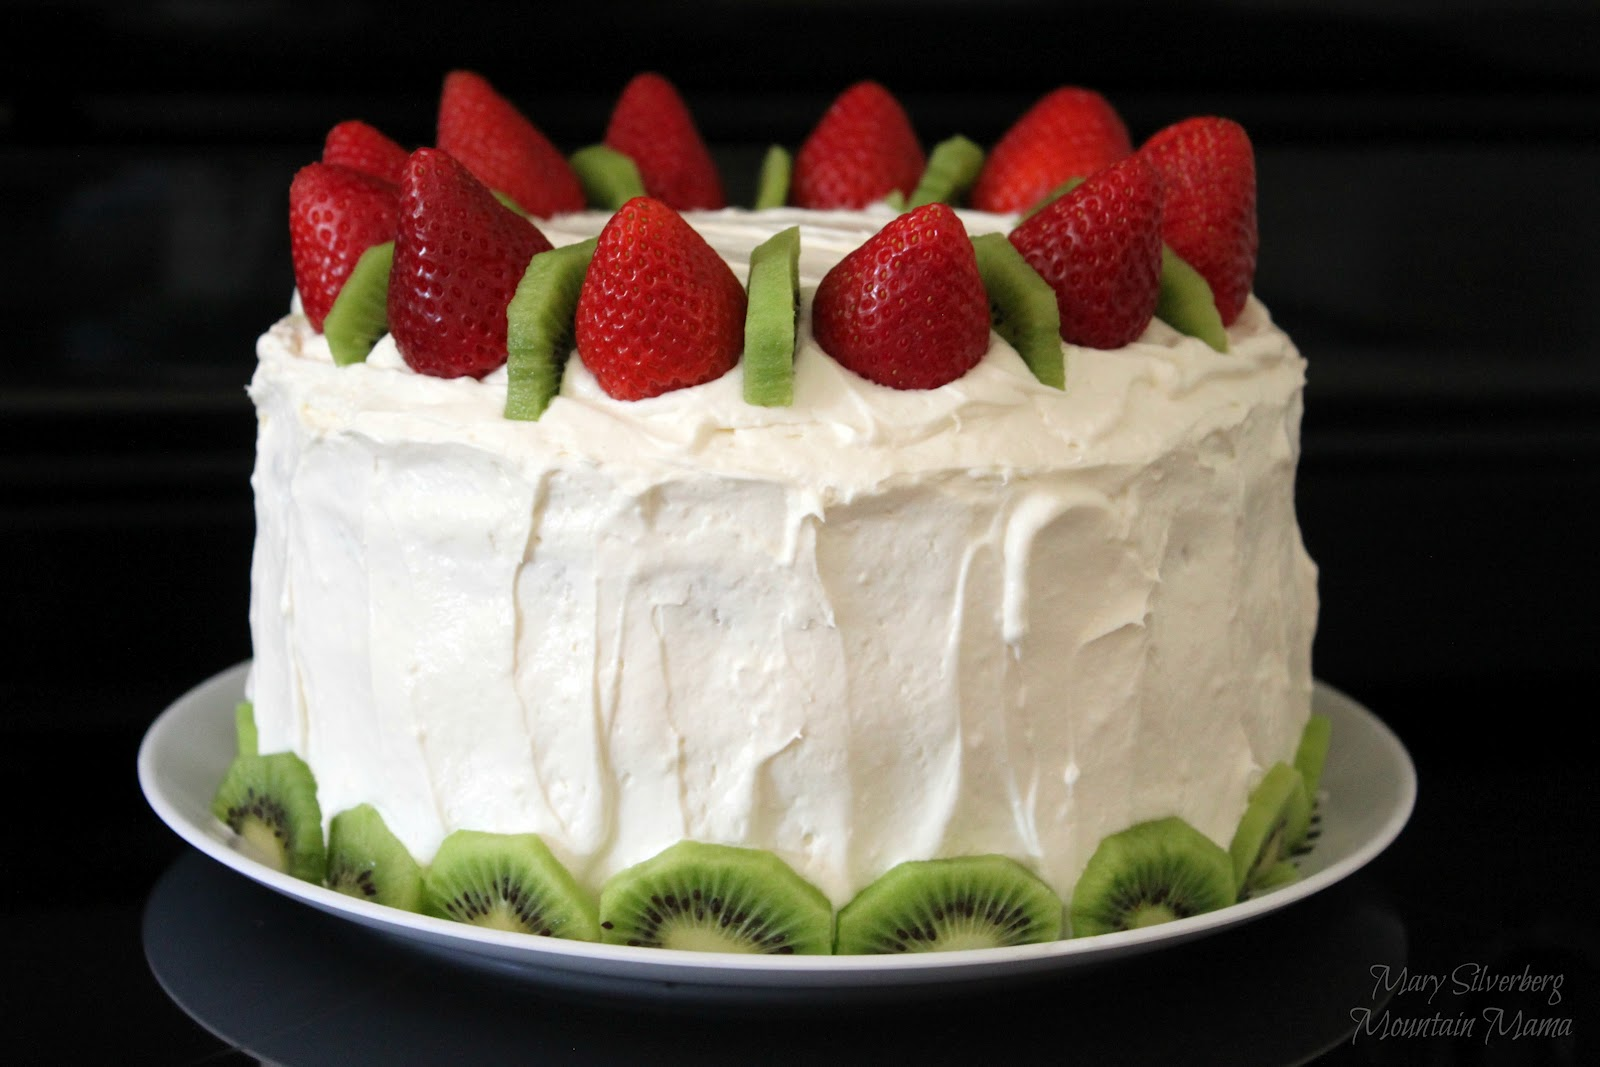 Debbie, I think you can make a regular vanilla buttercream frosting, but add the strawberry stuff as indicated. If you check out my post for Cracked Sugar Cookies with Vanilla Buttercream Frosting, you can locate the icing recipe on that post.